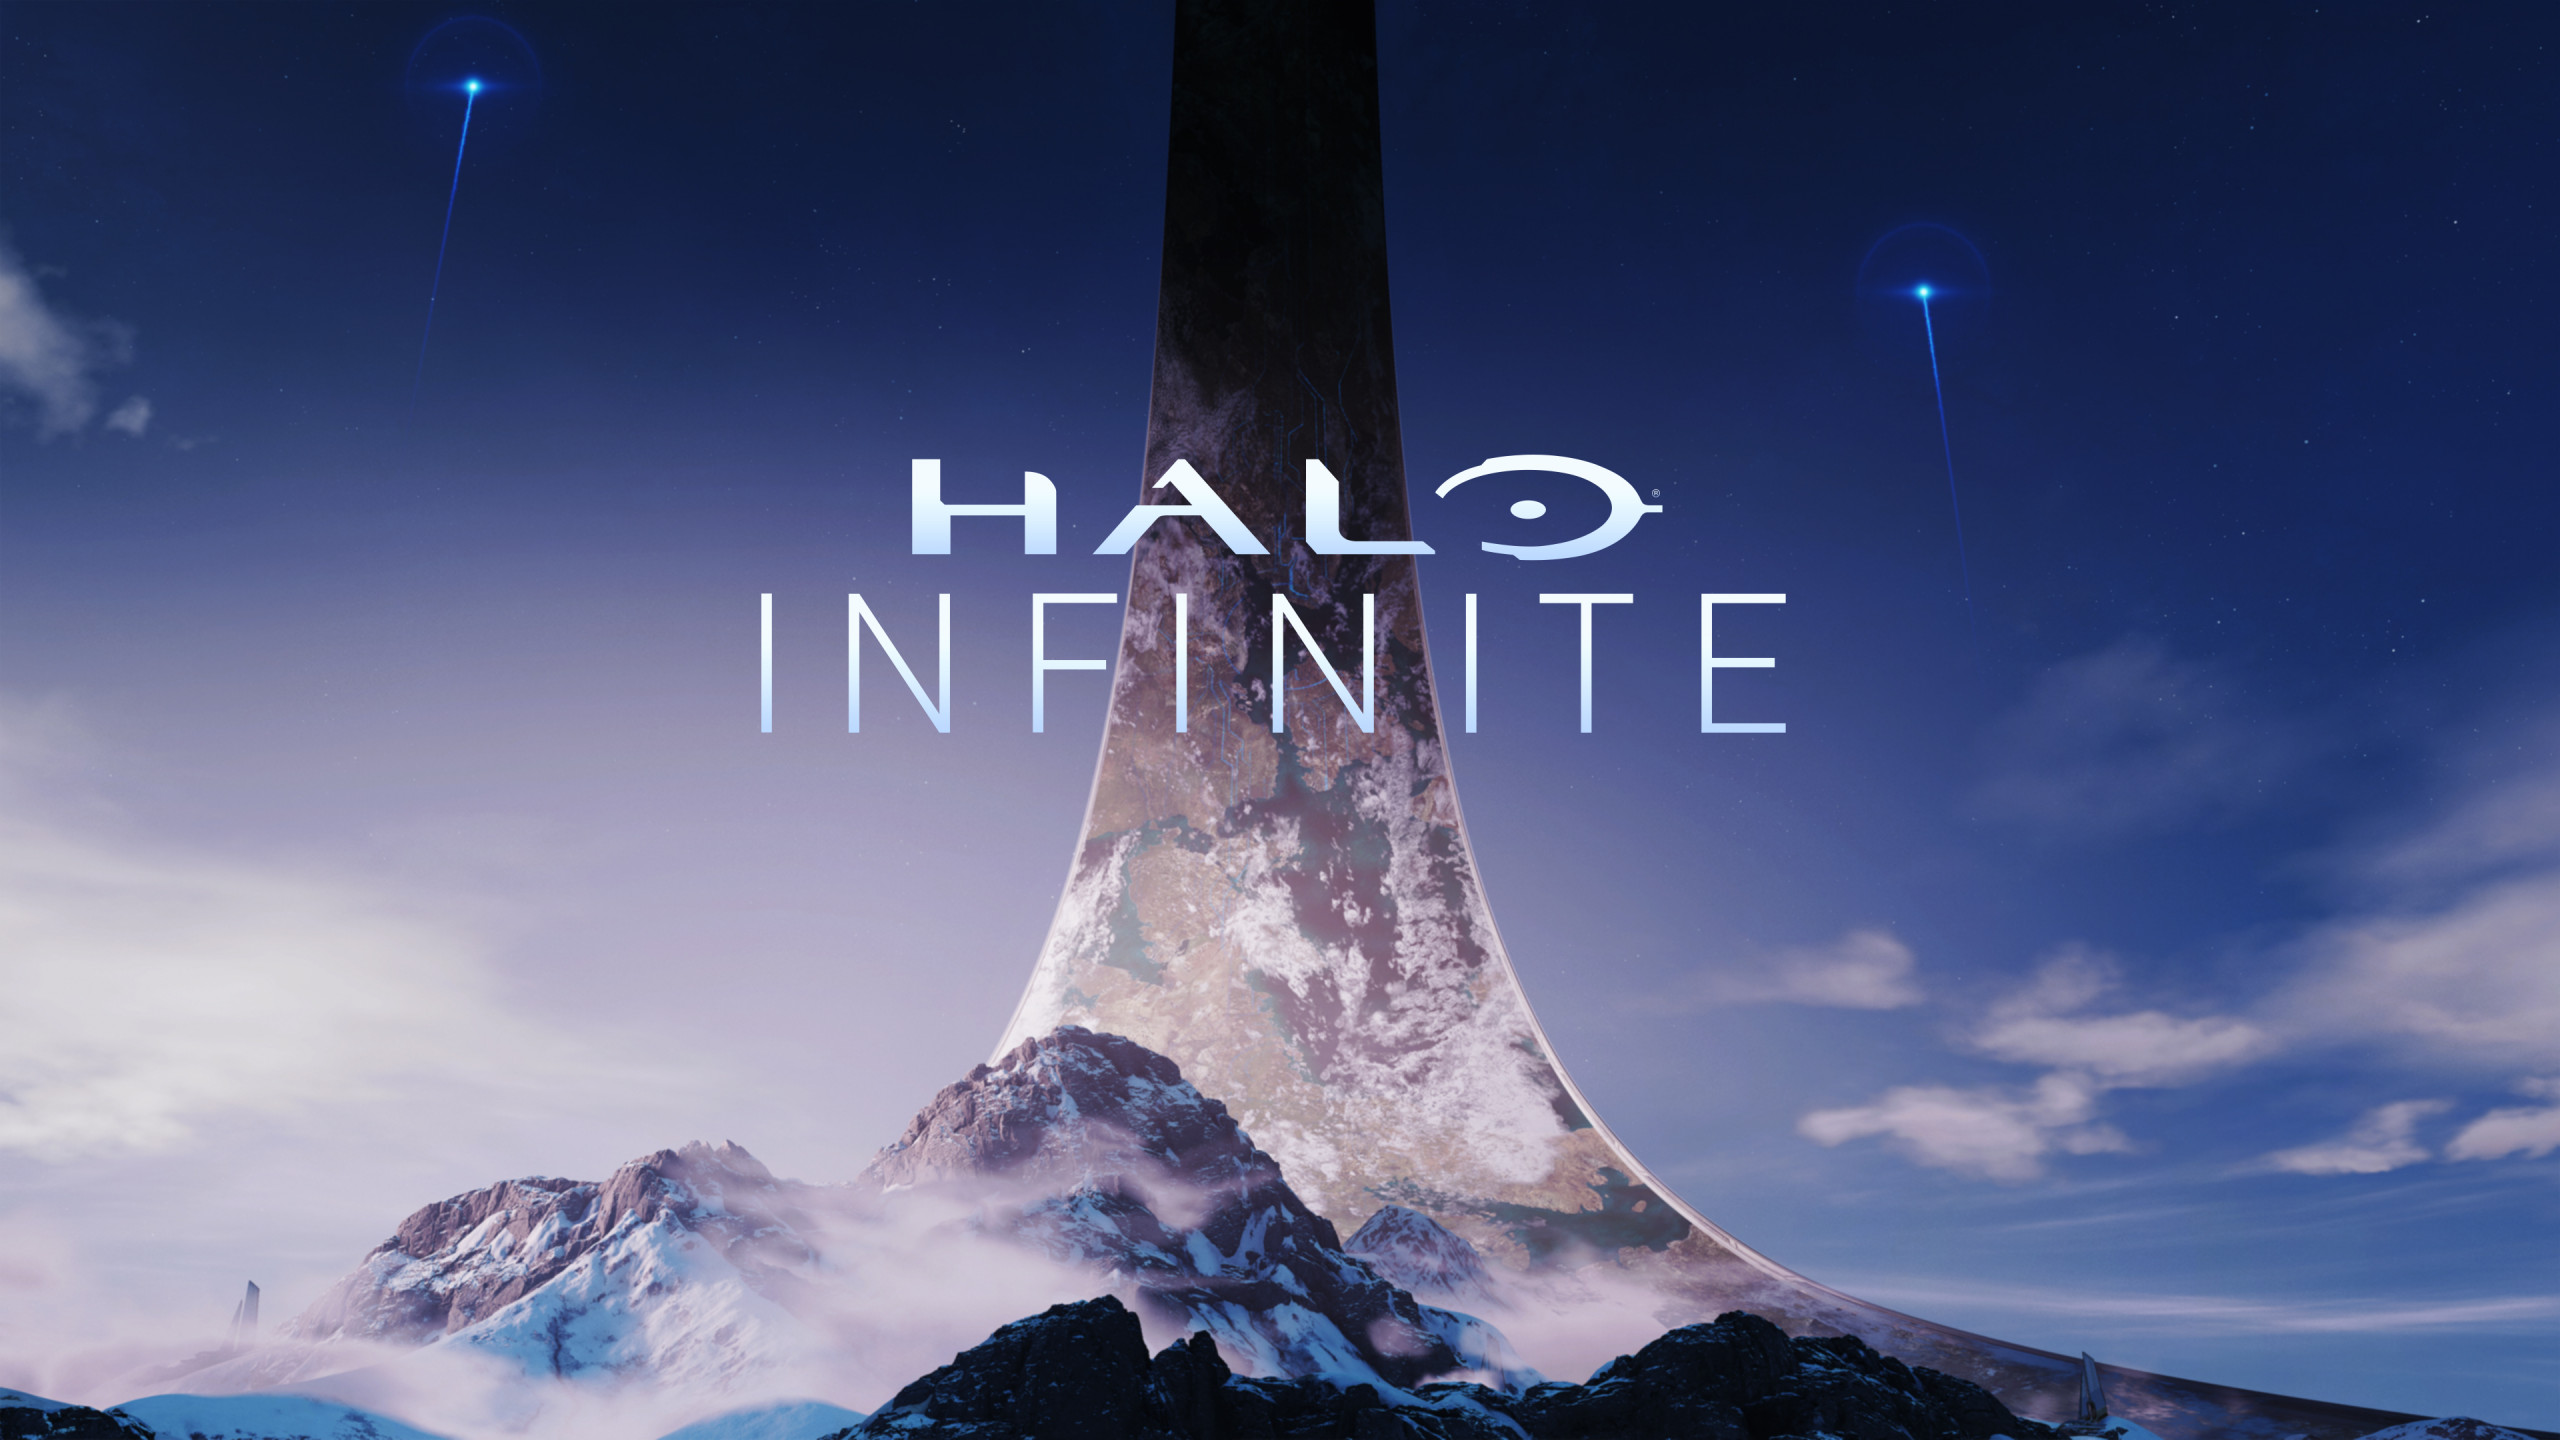 Halo Infinite wallpaper 2560x1440